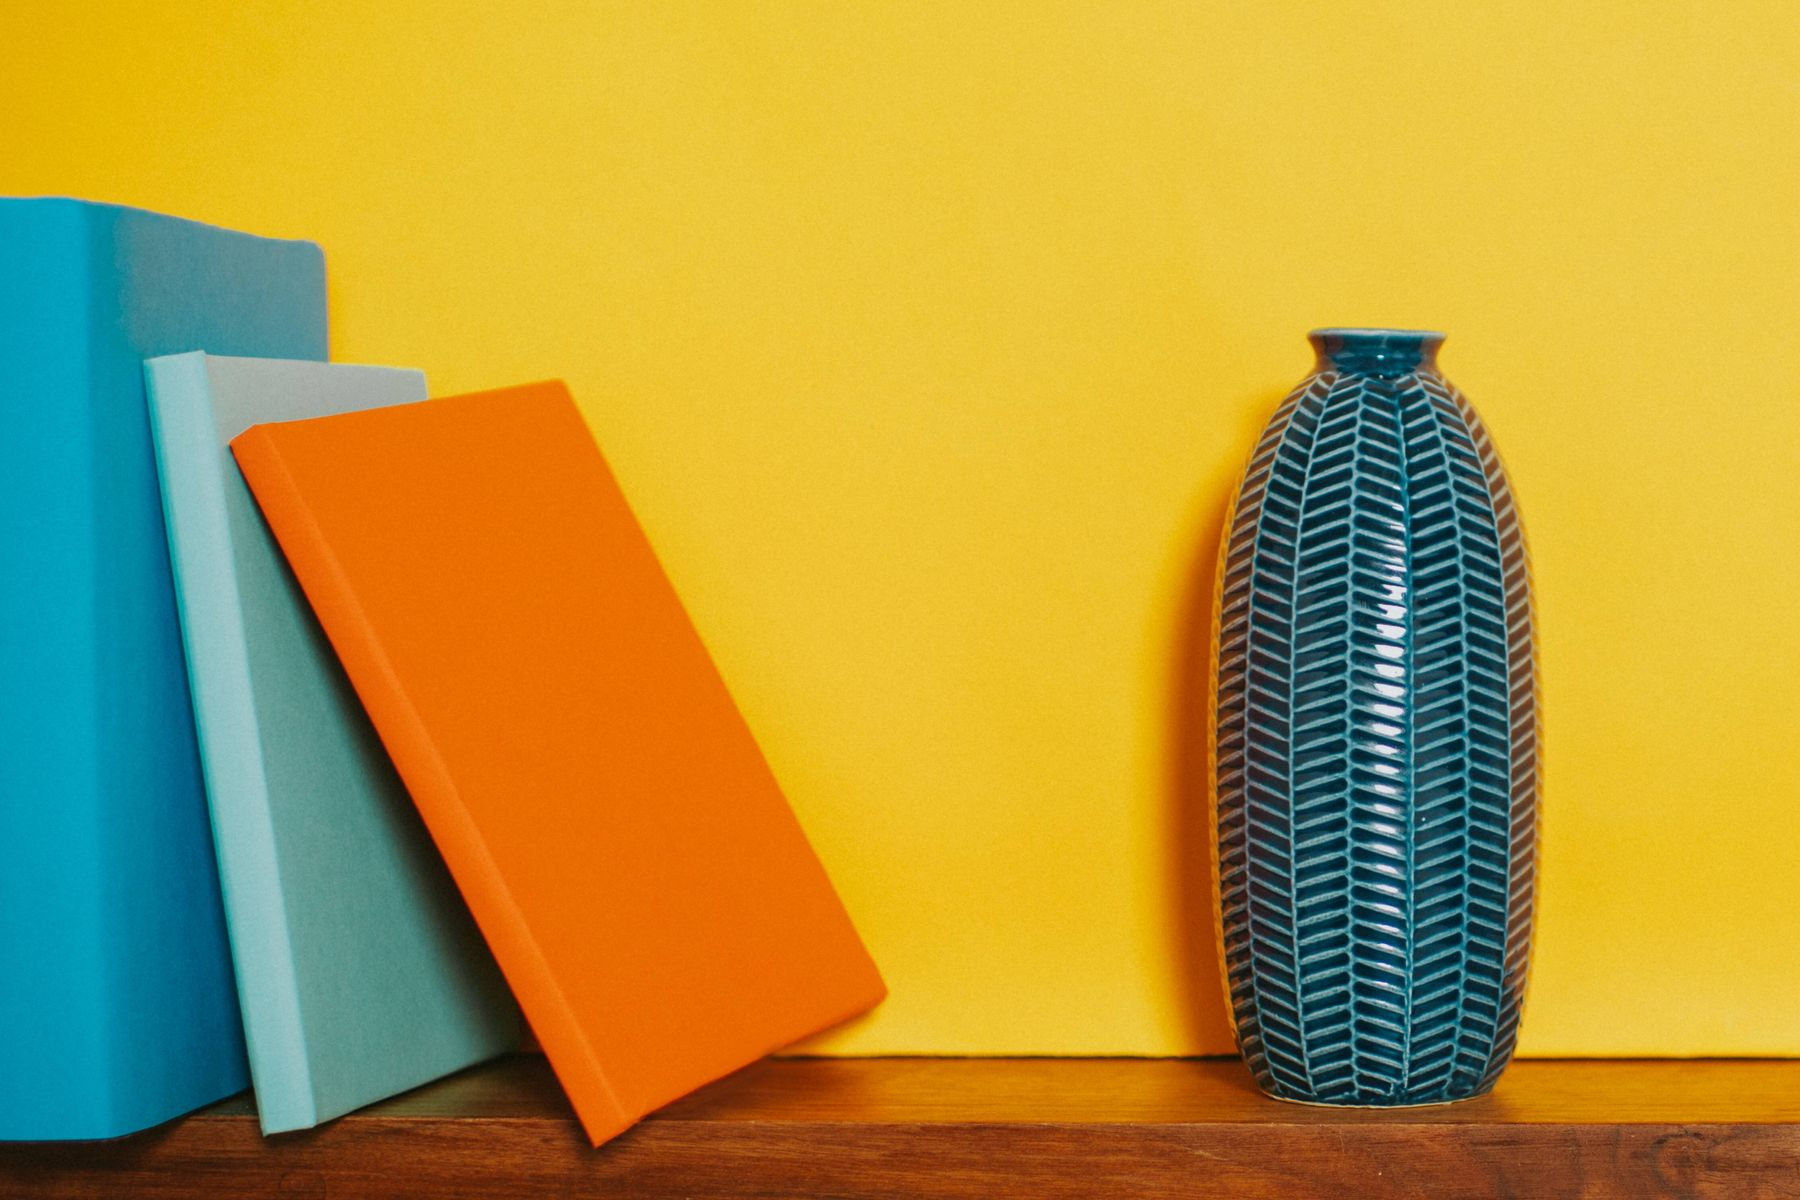 Bookshelf ideas: Blue books on a shelf with a vase